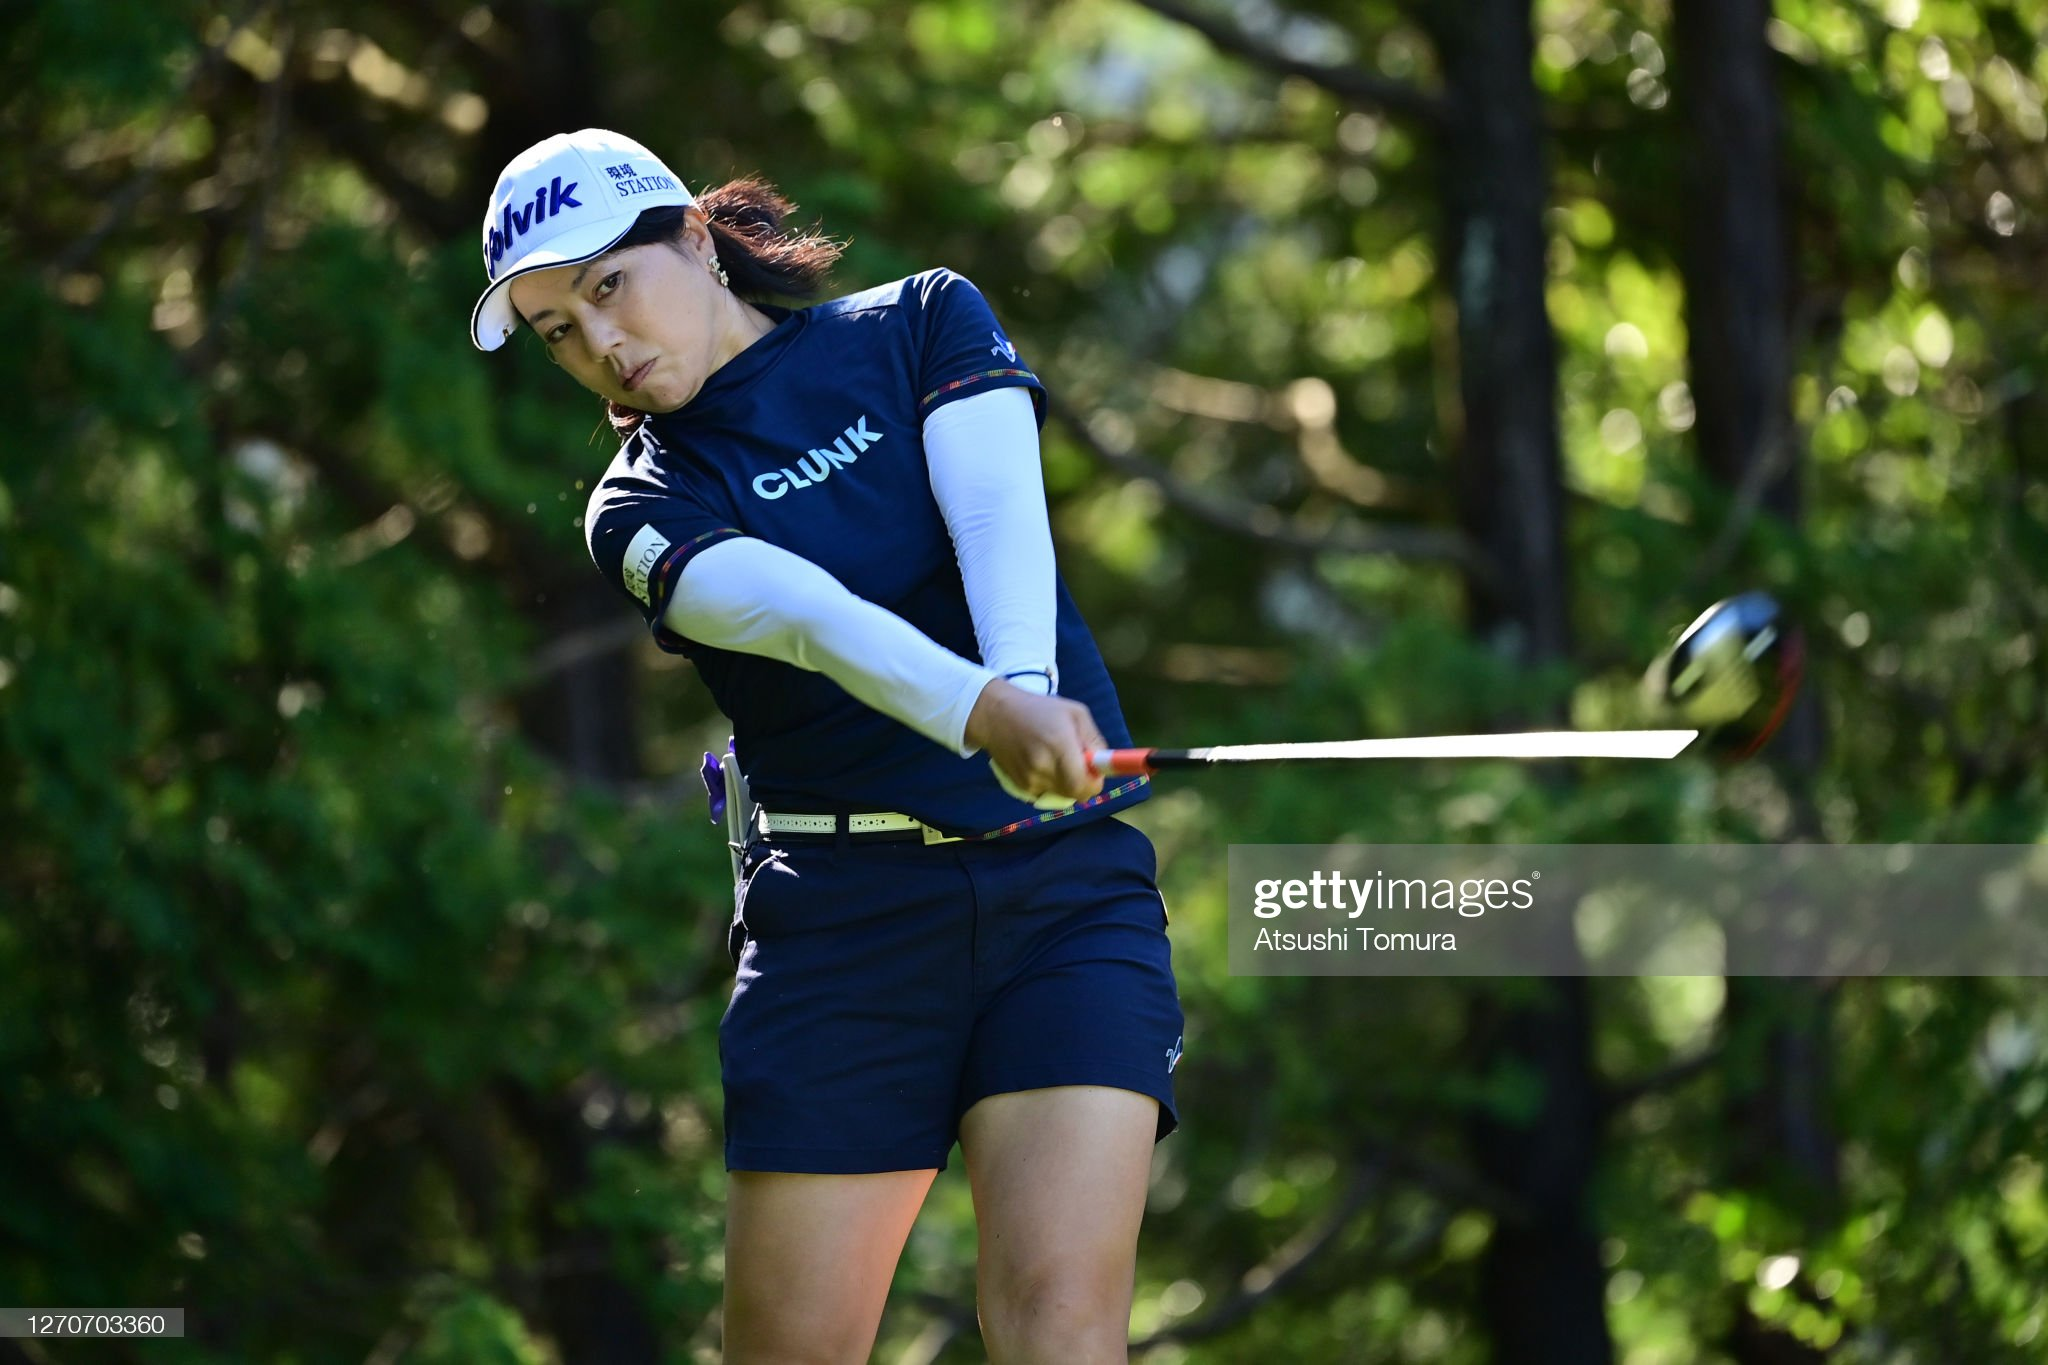 https://media.gettyimages.com/photos/megumi-shimokawa-of-japan-hits-her-tee-shot-on-the-3rd-hole-during-picture-id1270703360?s=2048x2048